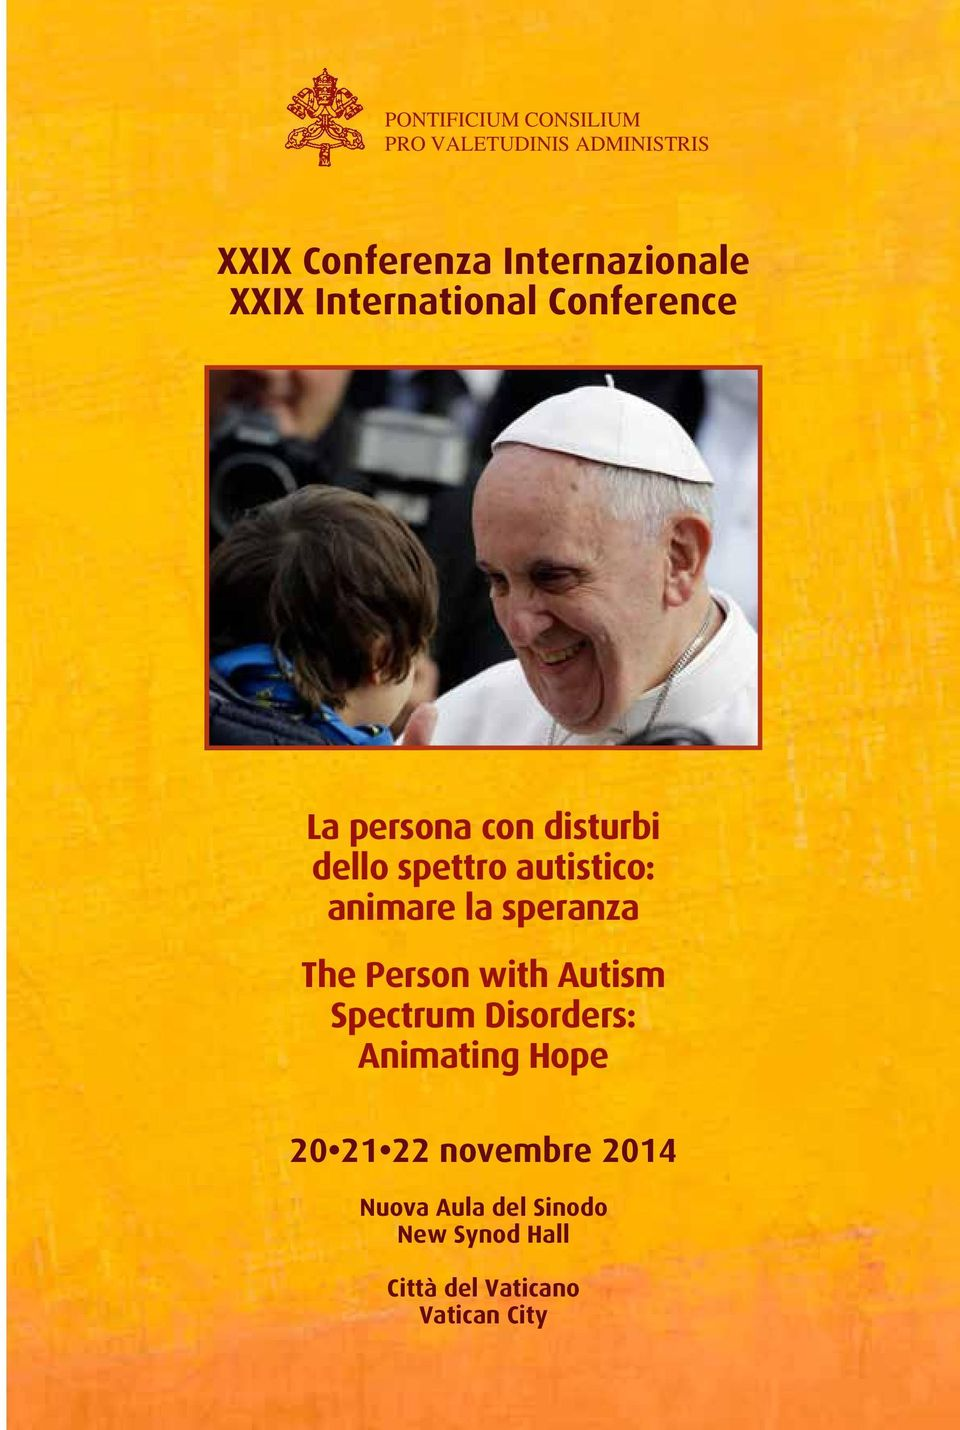 animare la speranza The Person with Autism Spectrum Disorders: Animating Hope 20